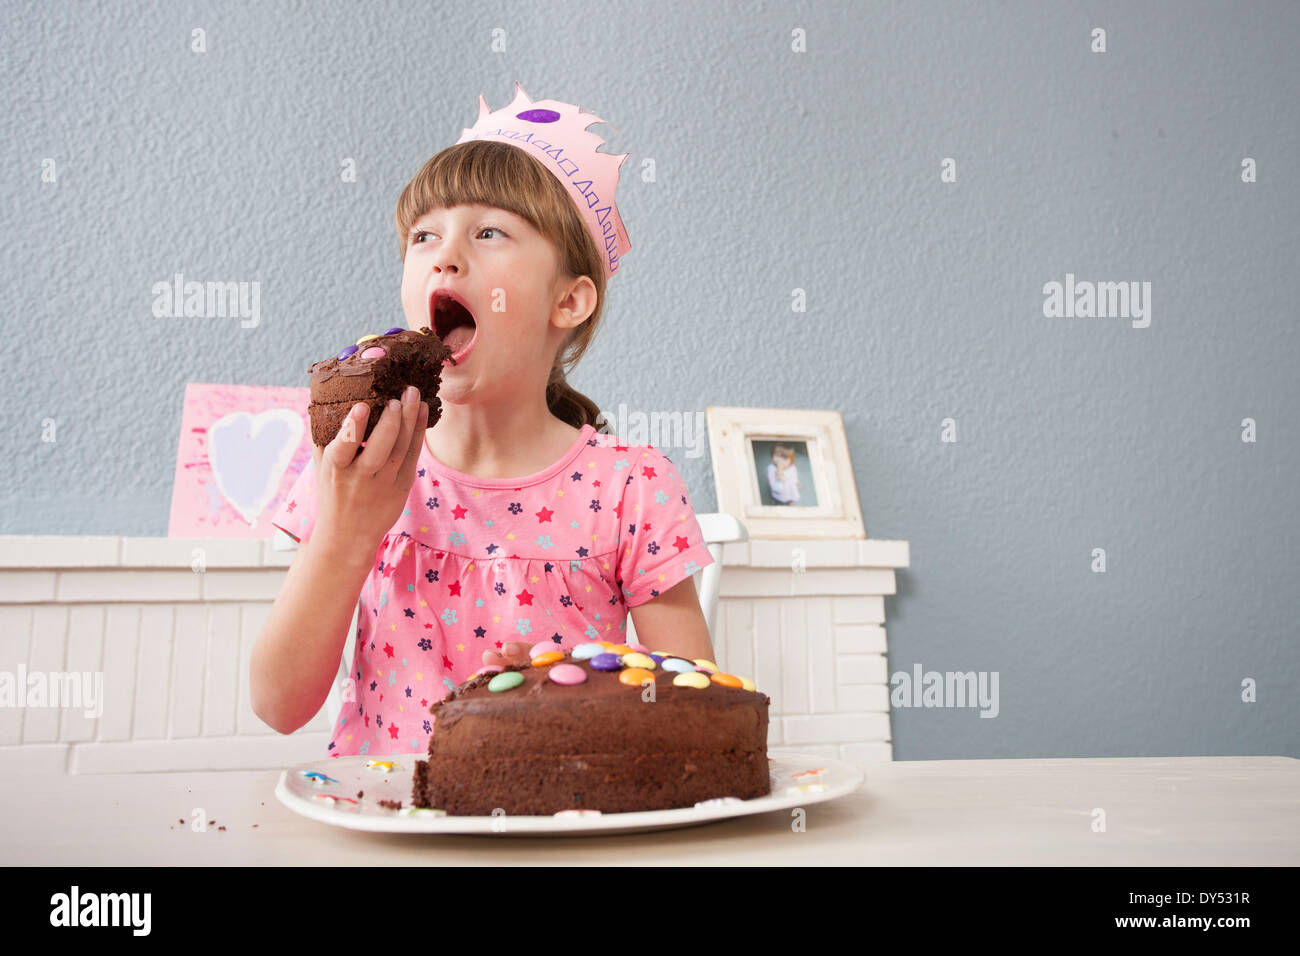 Girl eating her birthday cake - Stock Image